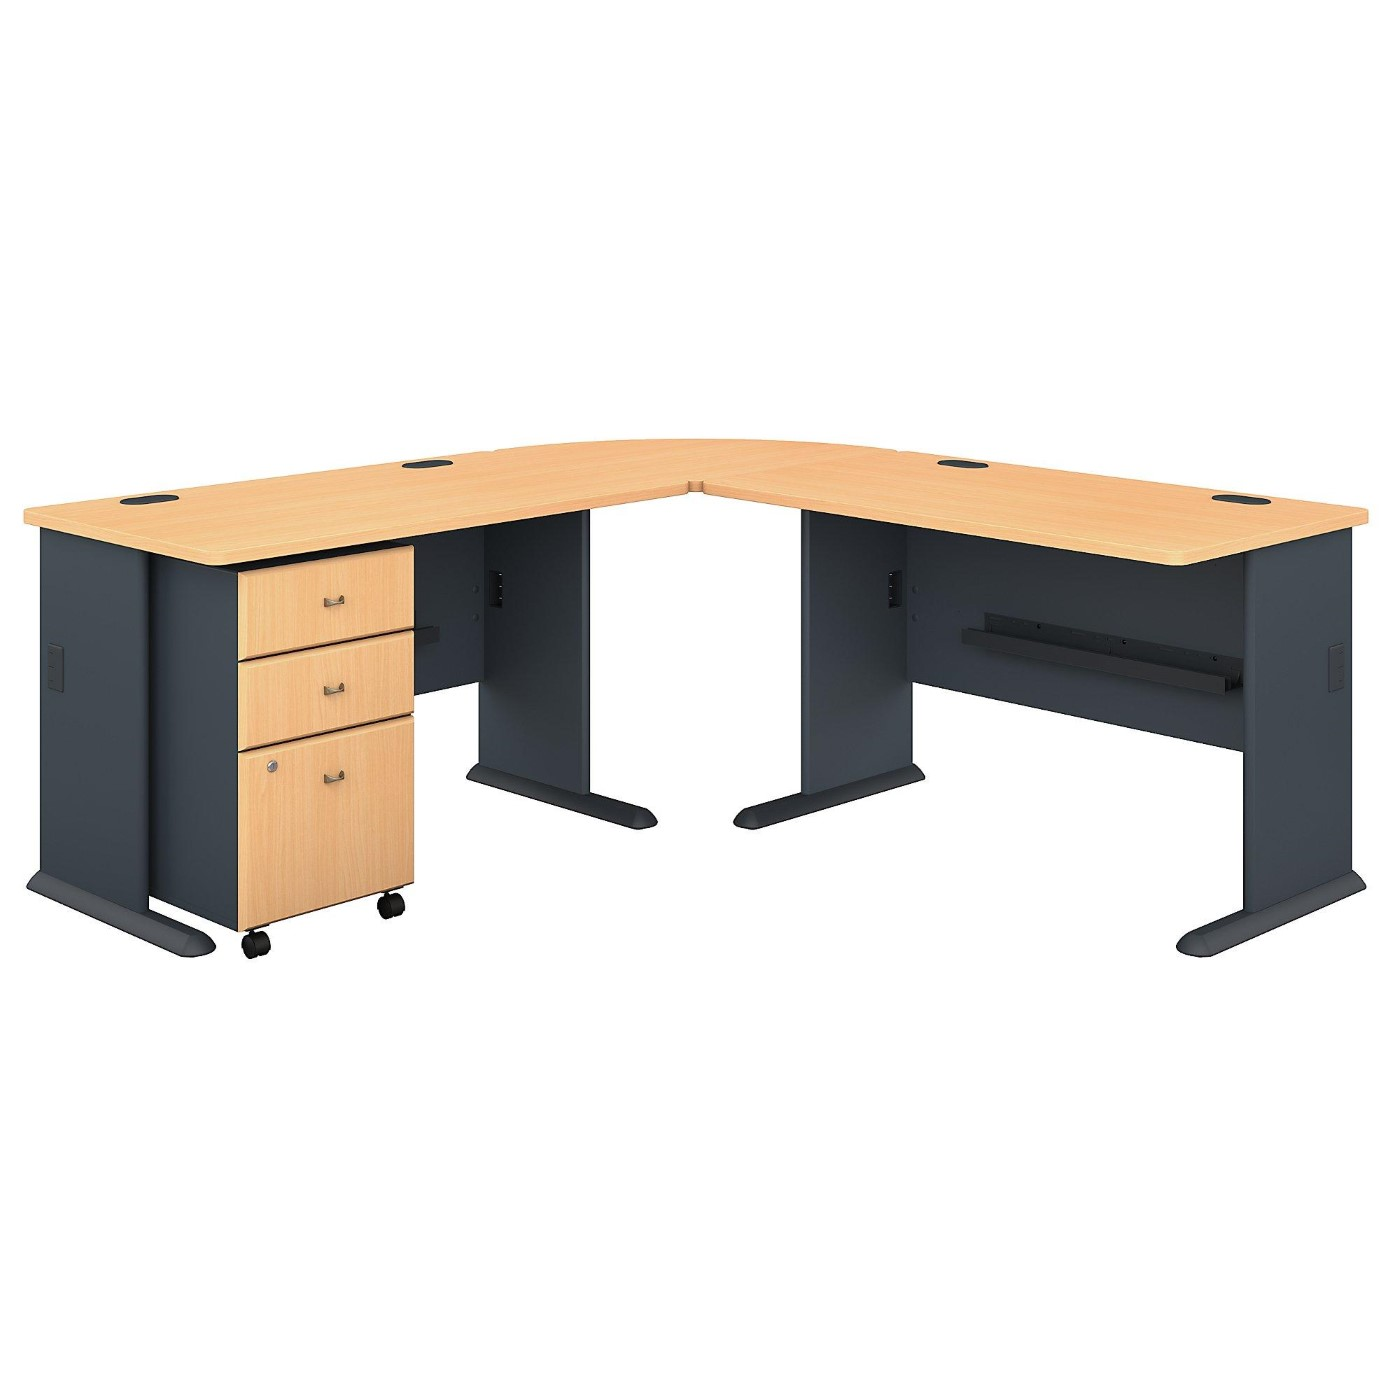 BUSH BUSINESS FURNITURE SERIES A 75W X 75D L SHAPED DESK WITH MOBILE FILE CABINET. FREE SHIPPING</font></b></font>&#x1F384<font color=red><b>ERGONOMICHOME HOLIDAY SALE - ENDS DEC. 17, 2019</b></font>&#x1F384